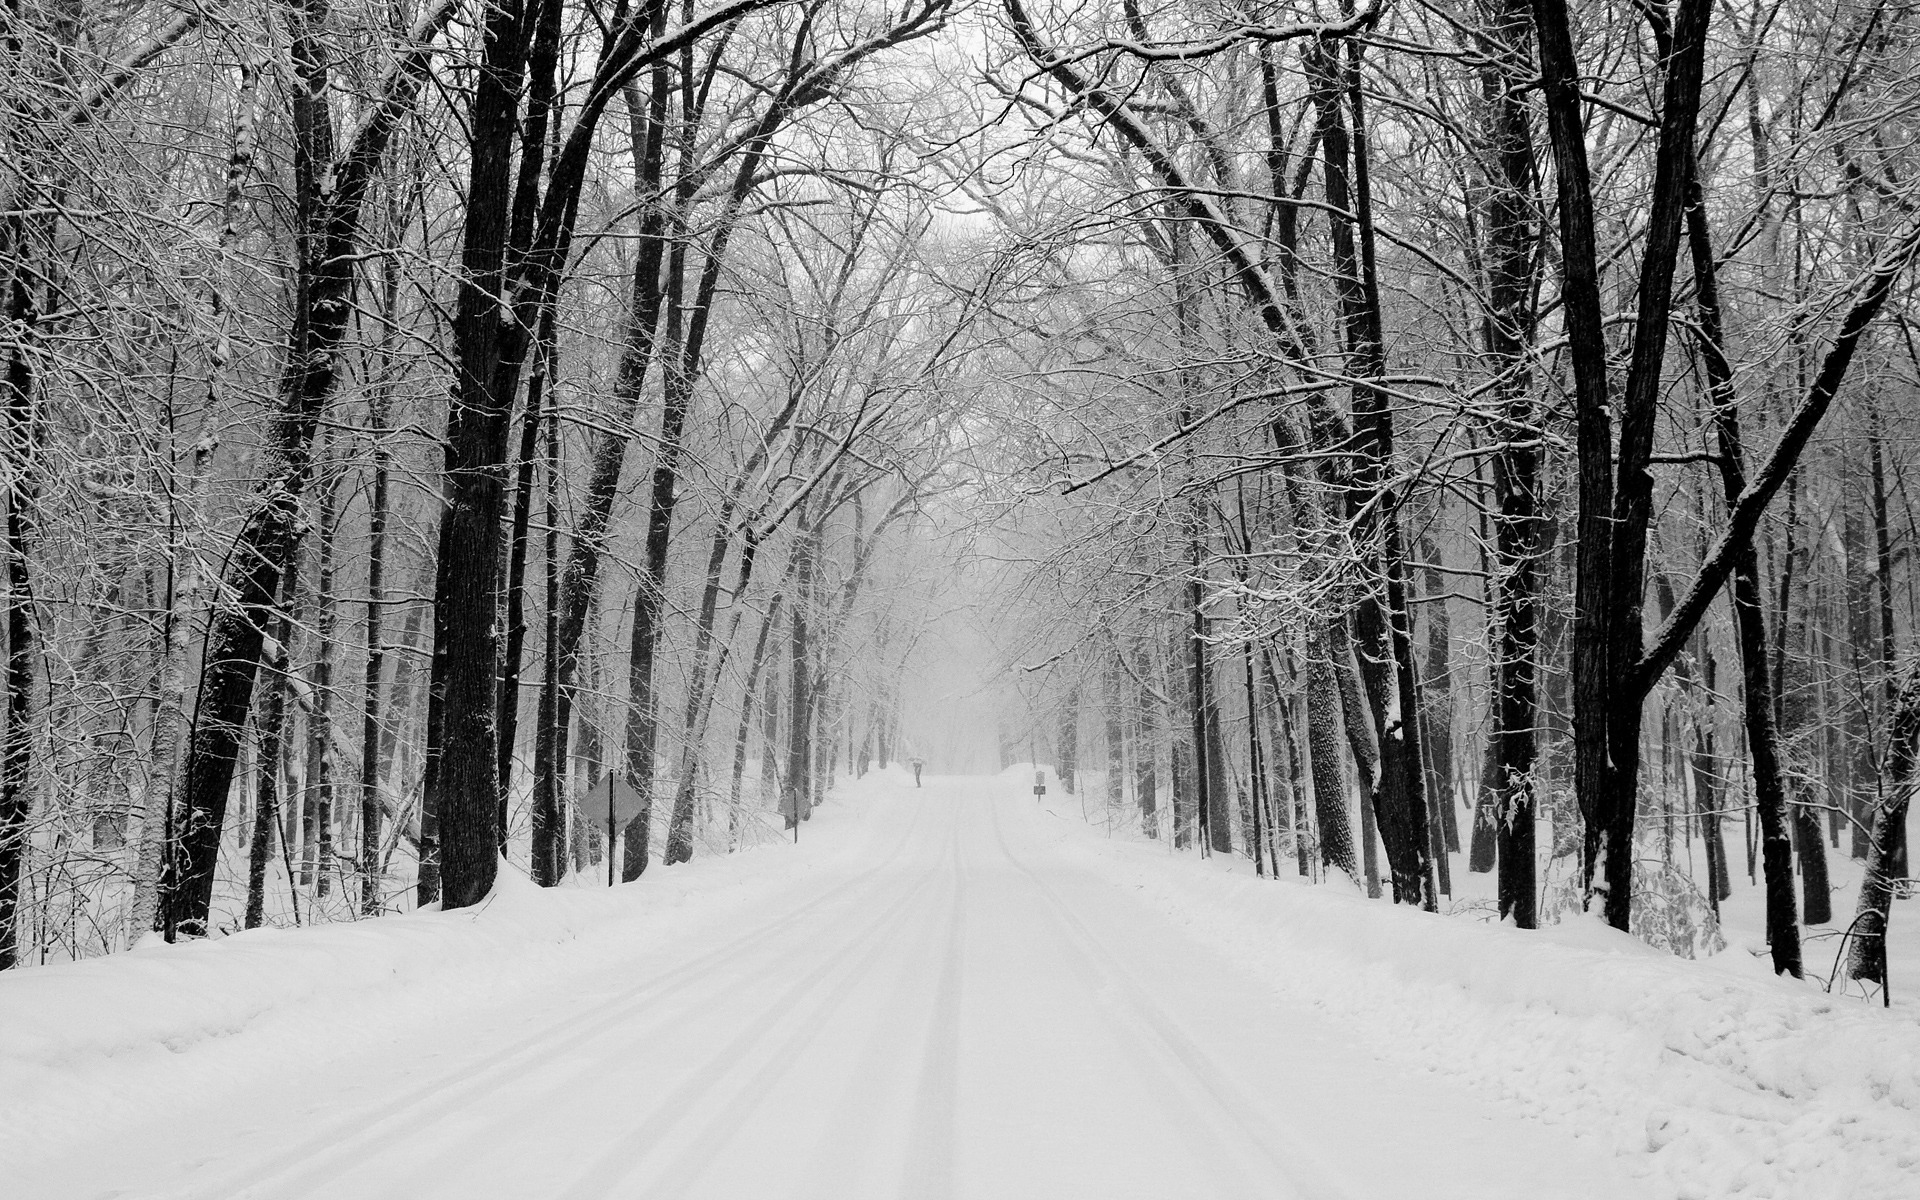 Snowy Road Wallpaper Winter Nature Wallpapers in jpg format for free ...